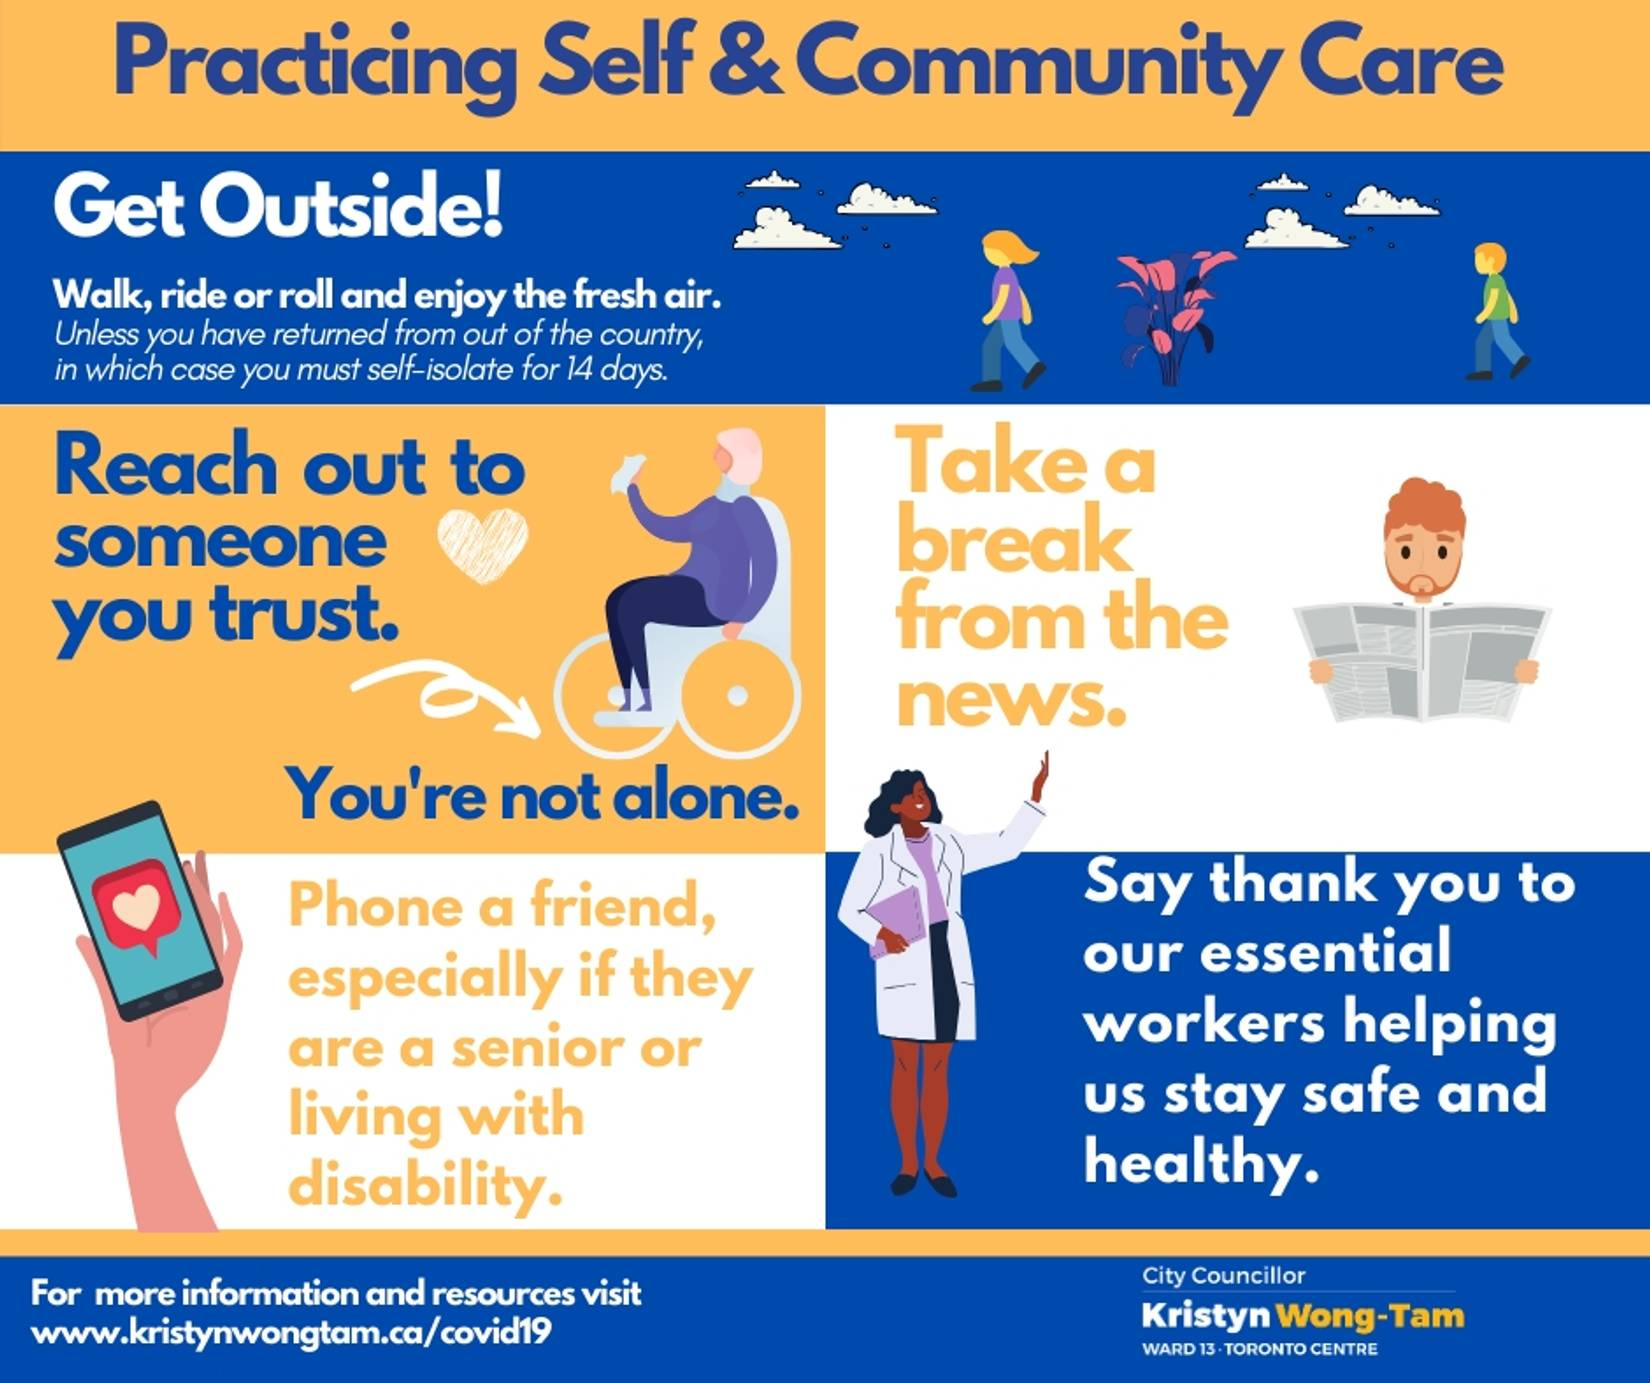 Self & Community Care